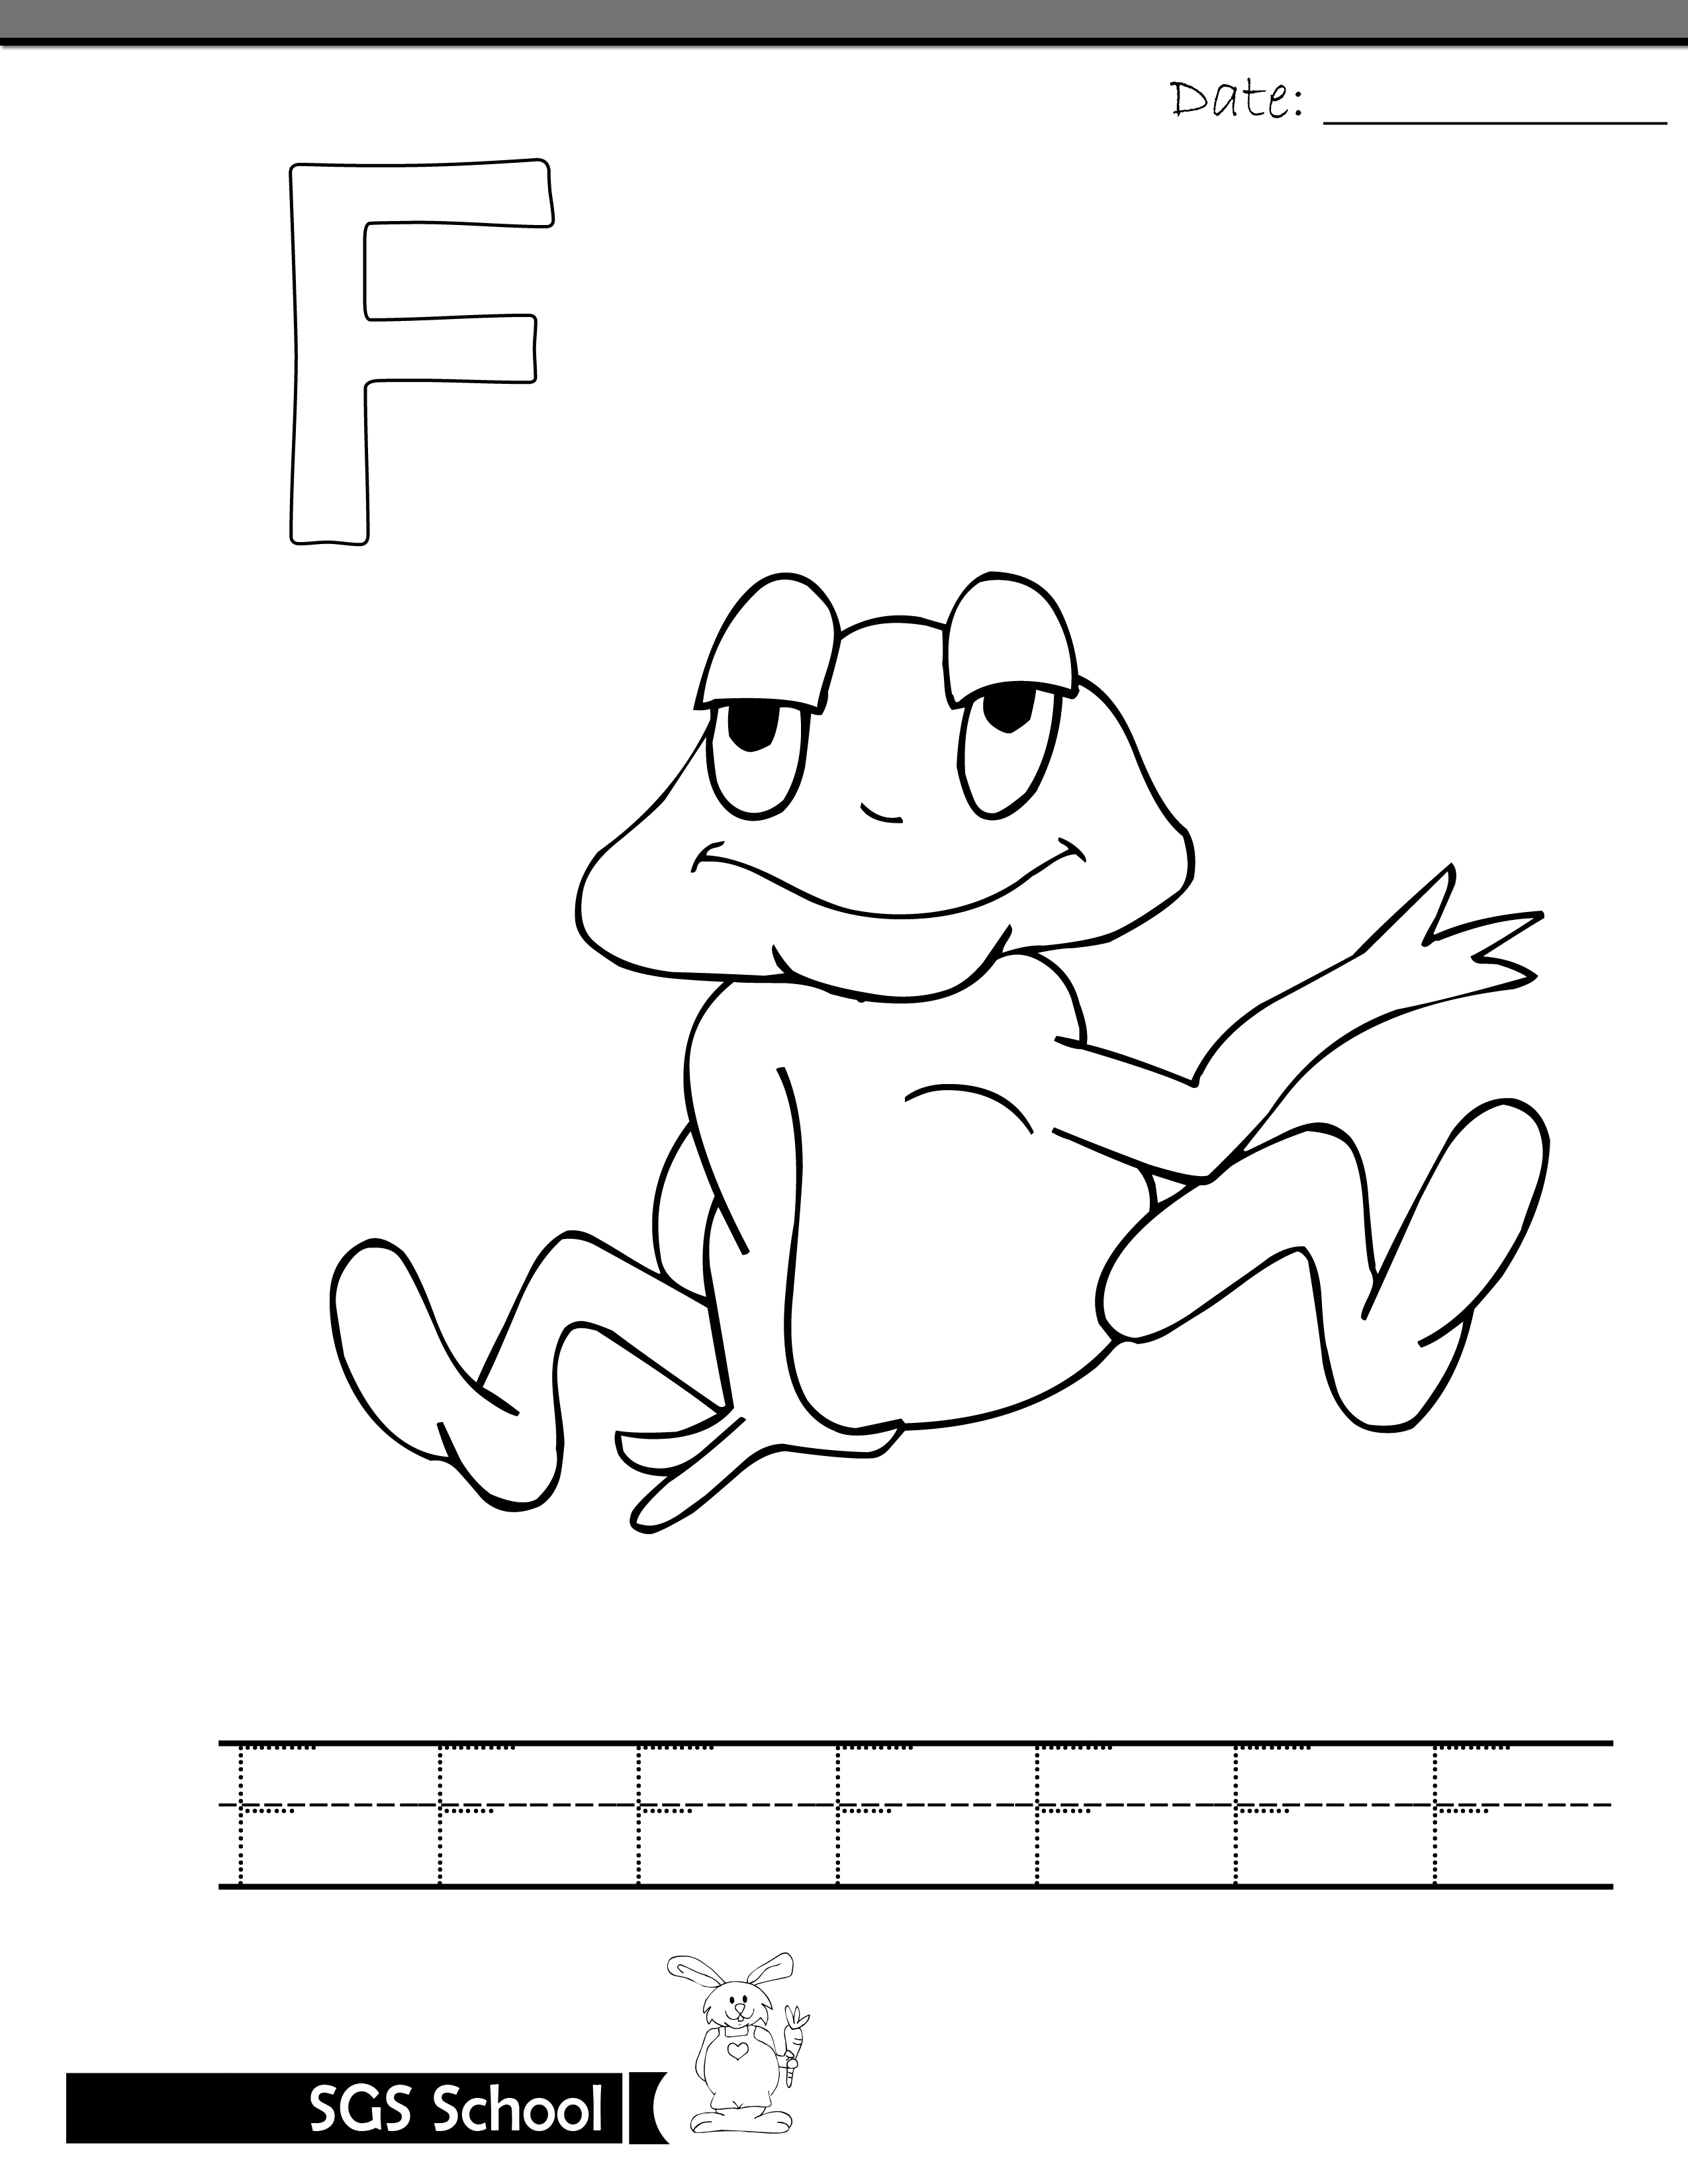 Free Printable Tracing And Drawing Worksheets Playgroup Shamim Grammar School Sgs